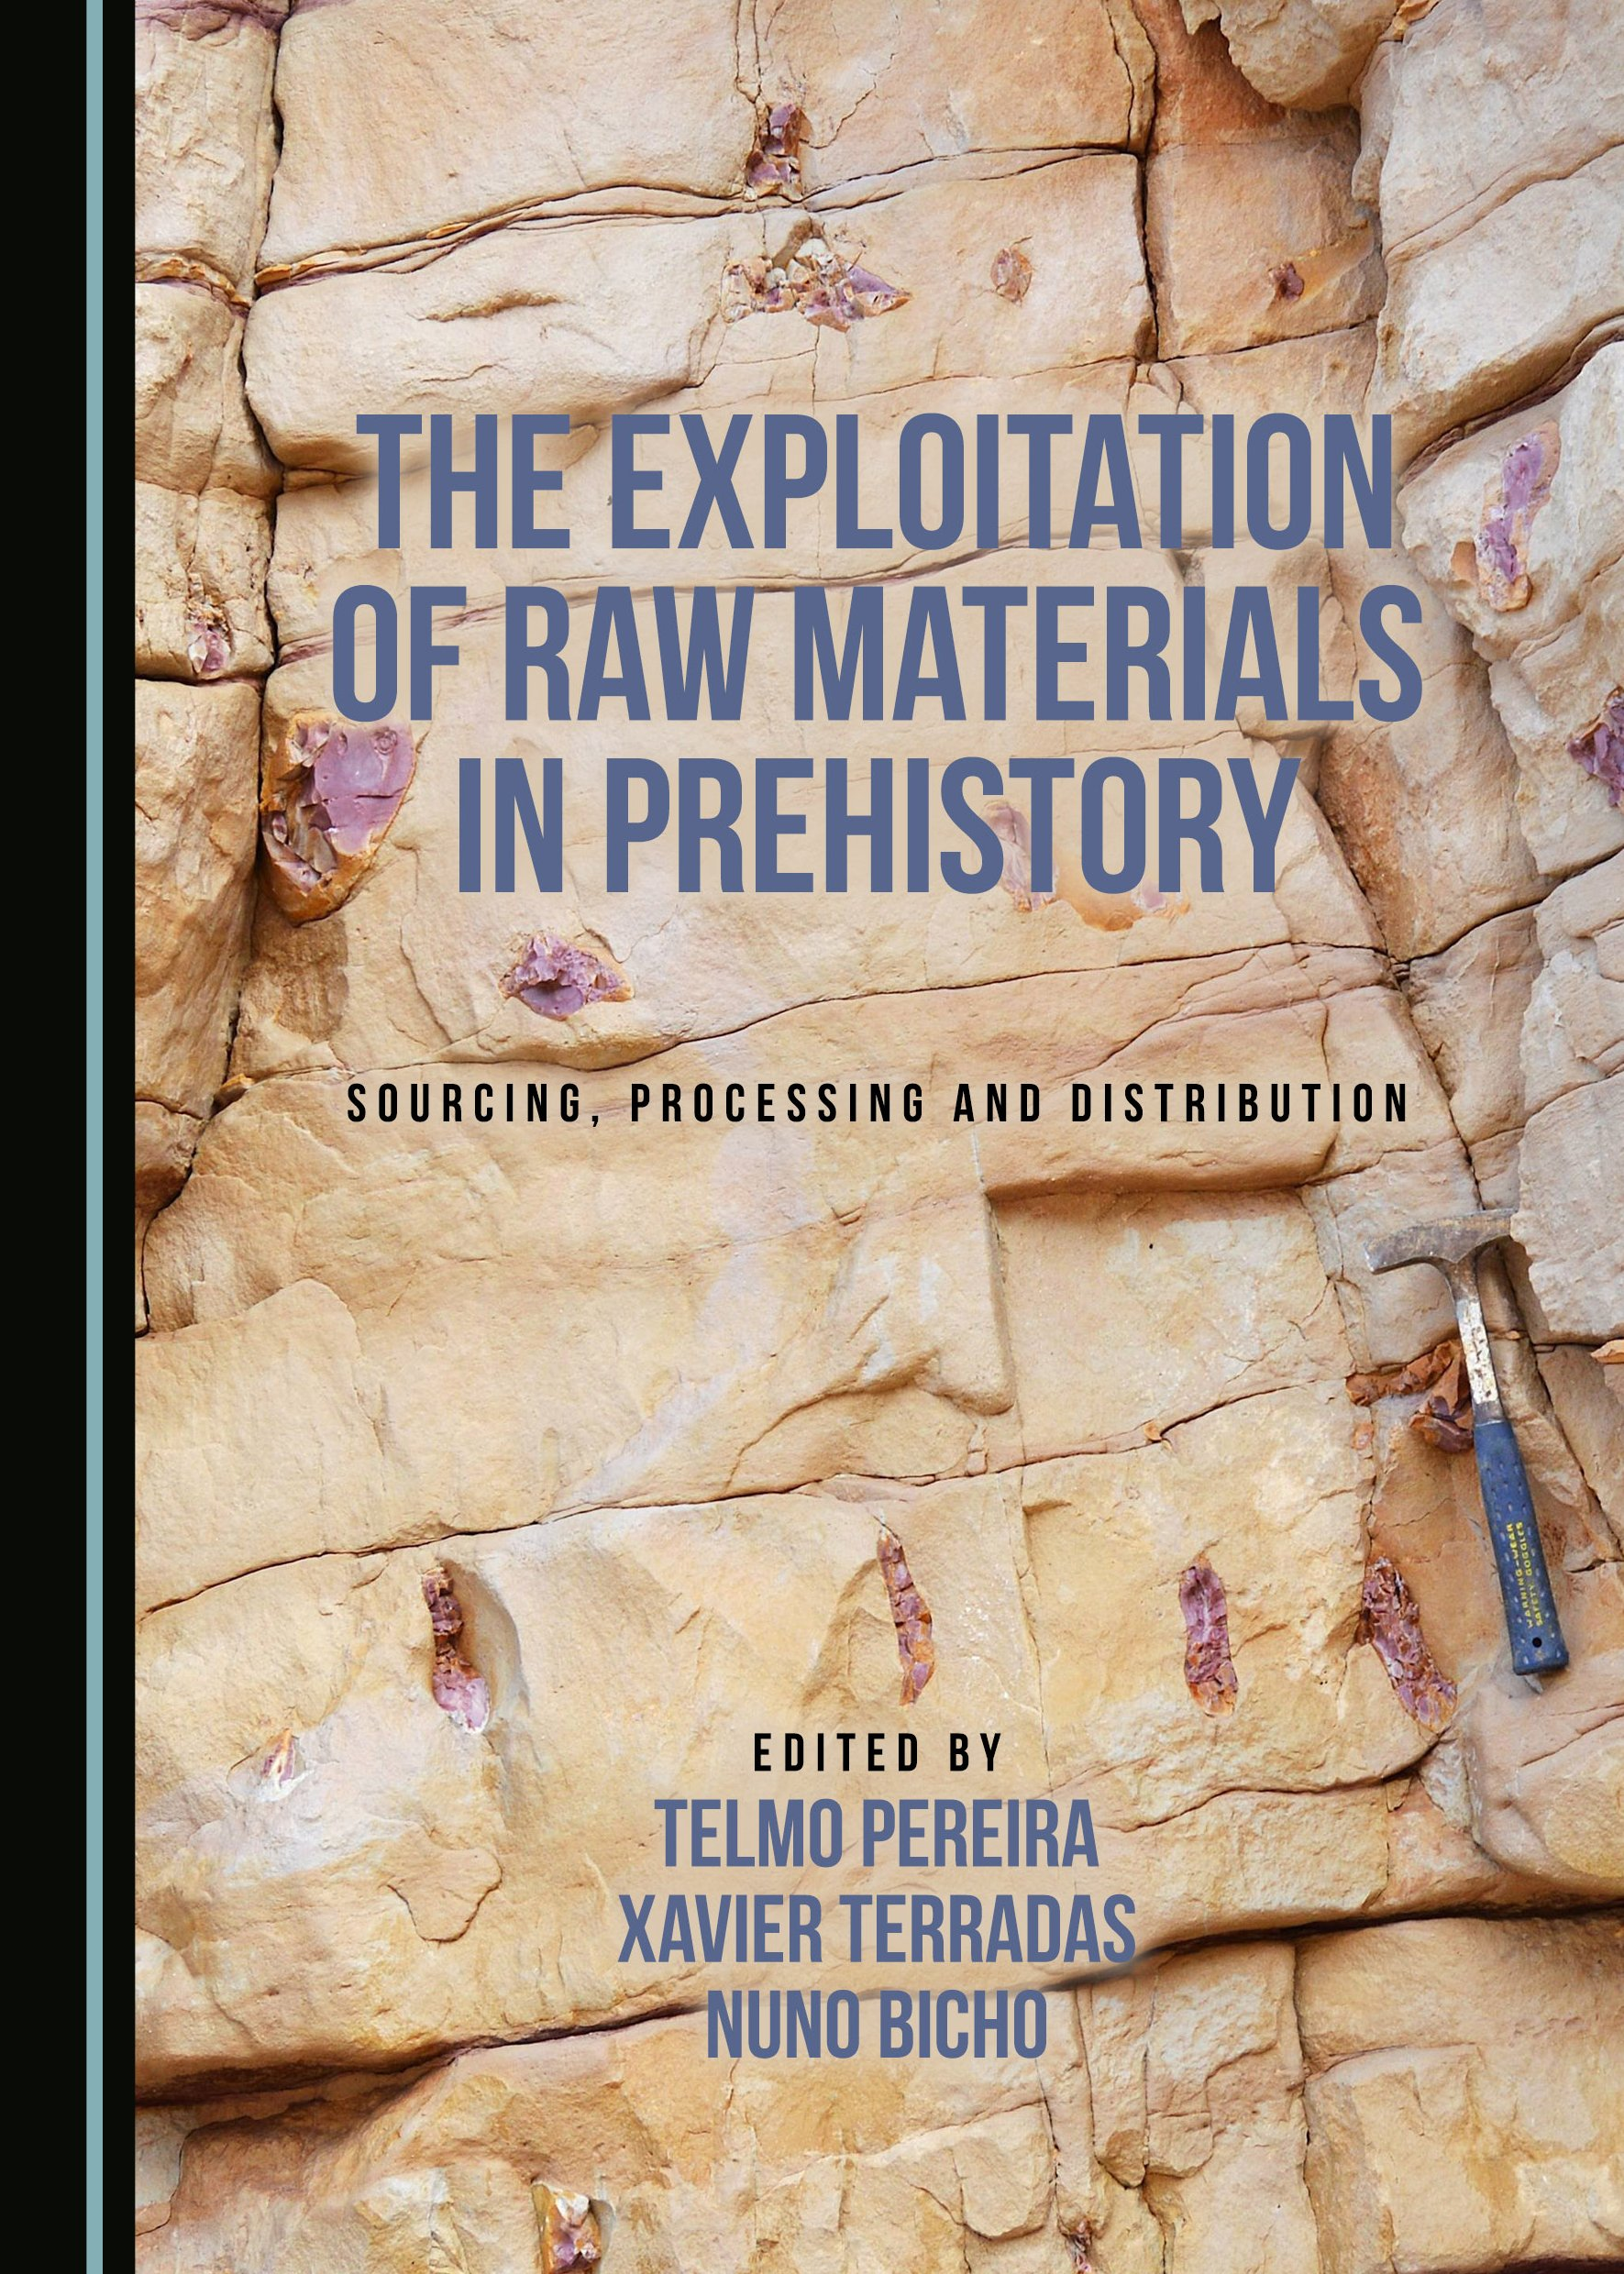 The Exploitation of Raw Materials in Prehistory: Sourcing, Processing and Distribution